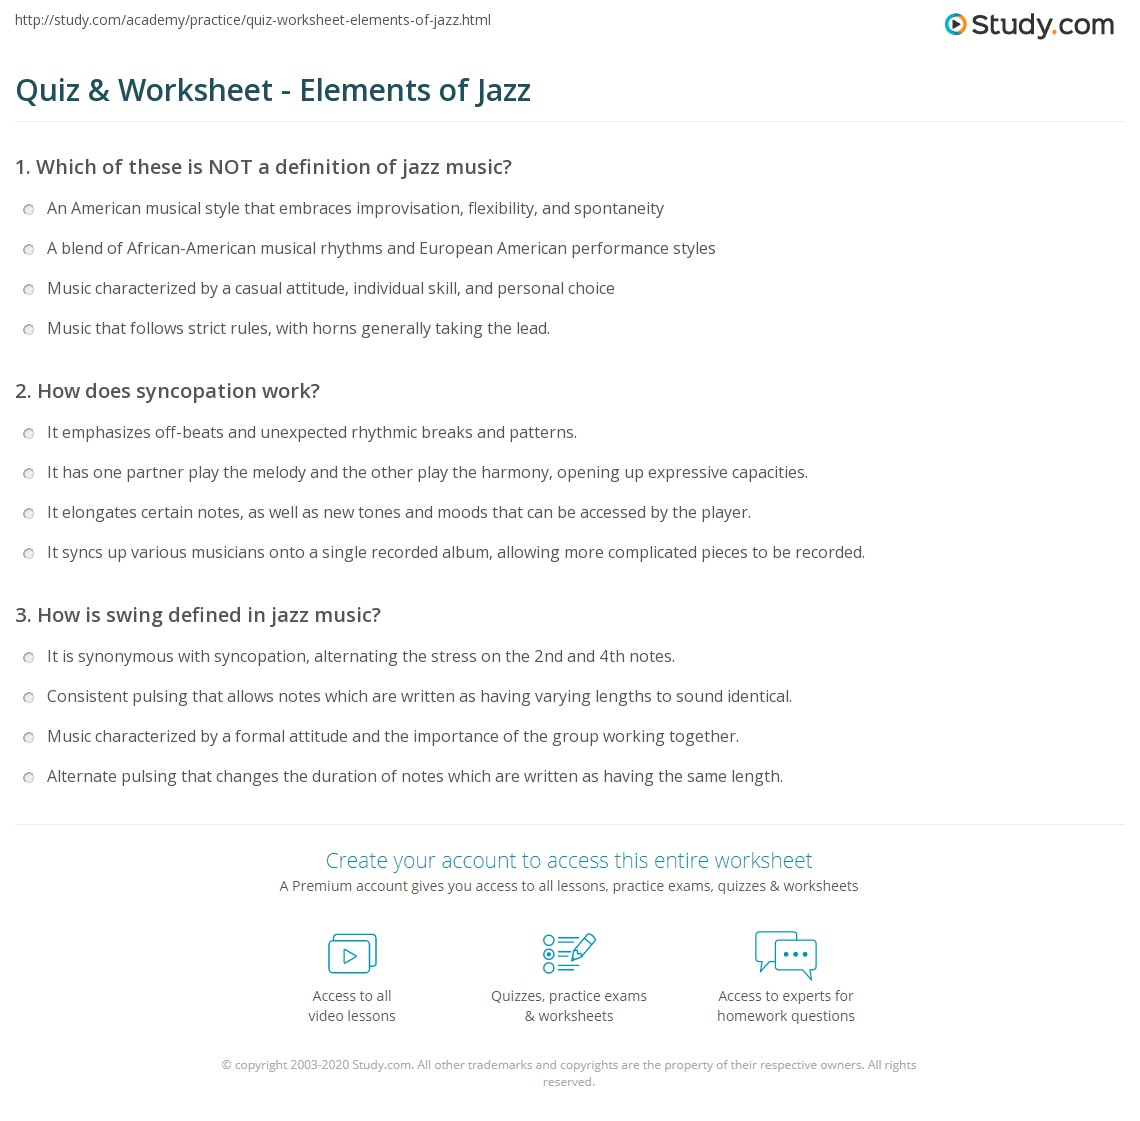 Quiz & Worksheet - Elements of Jazz | Study com